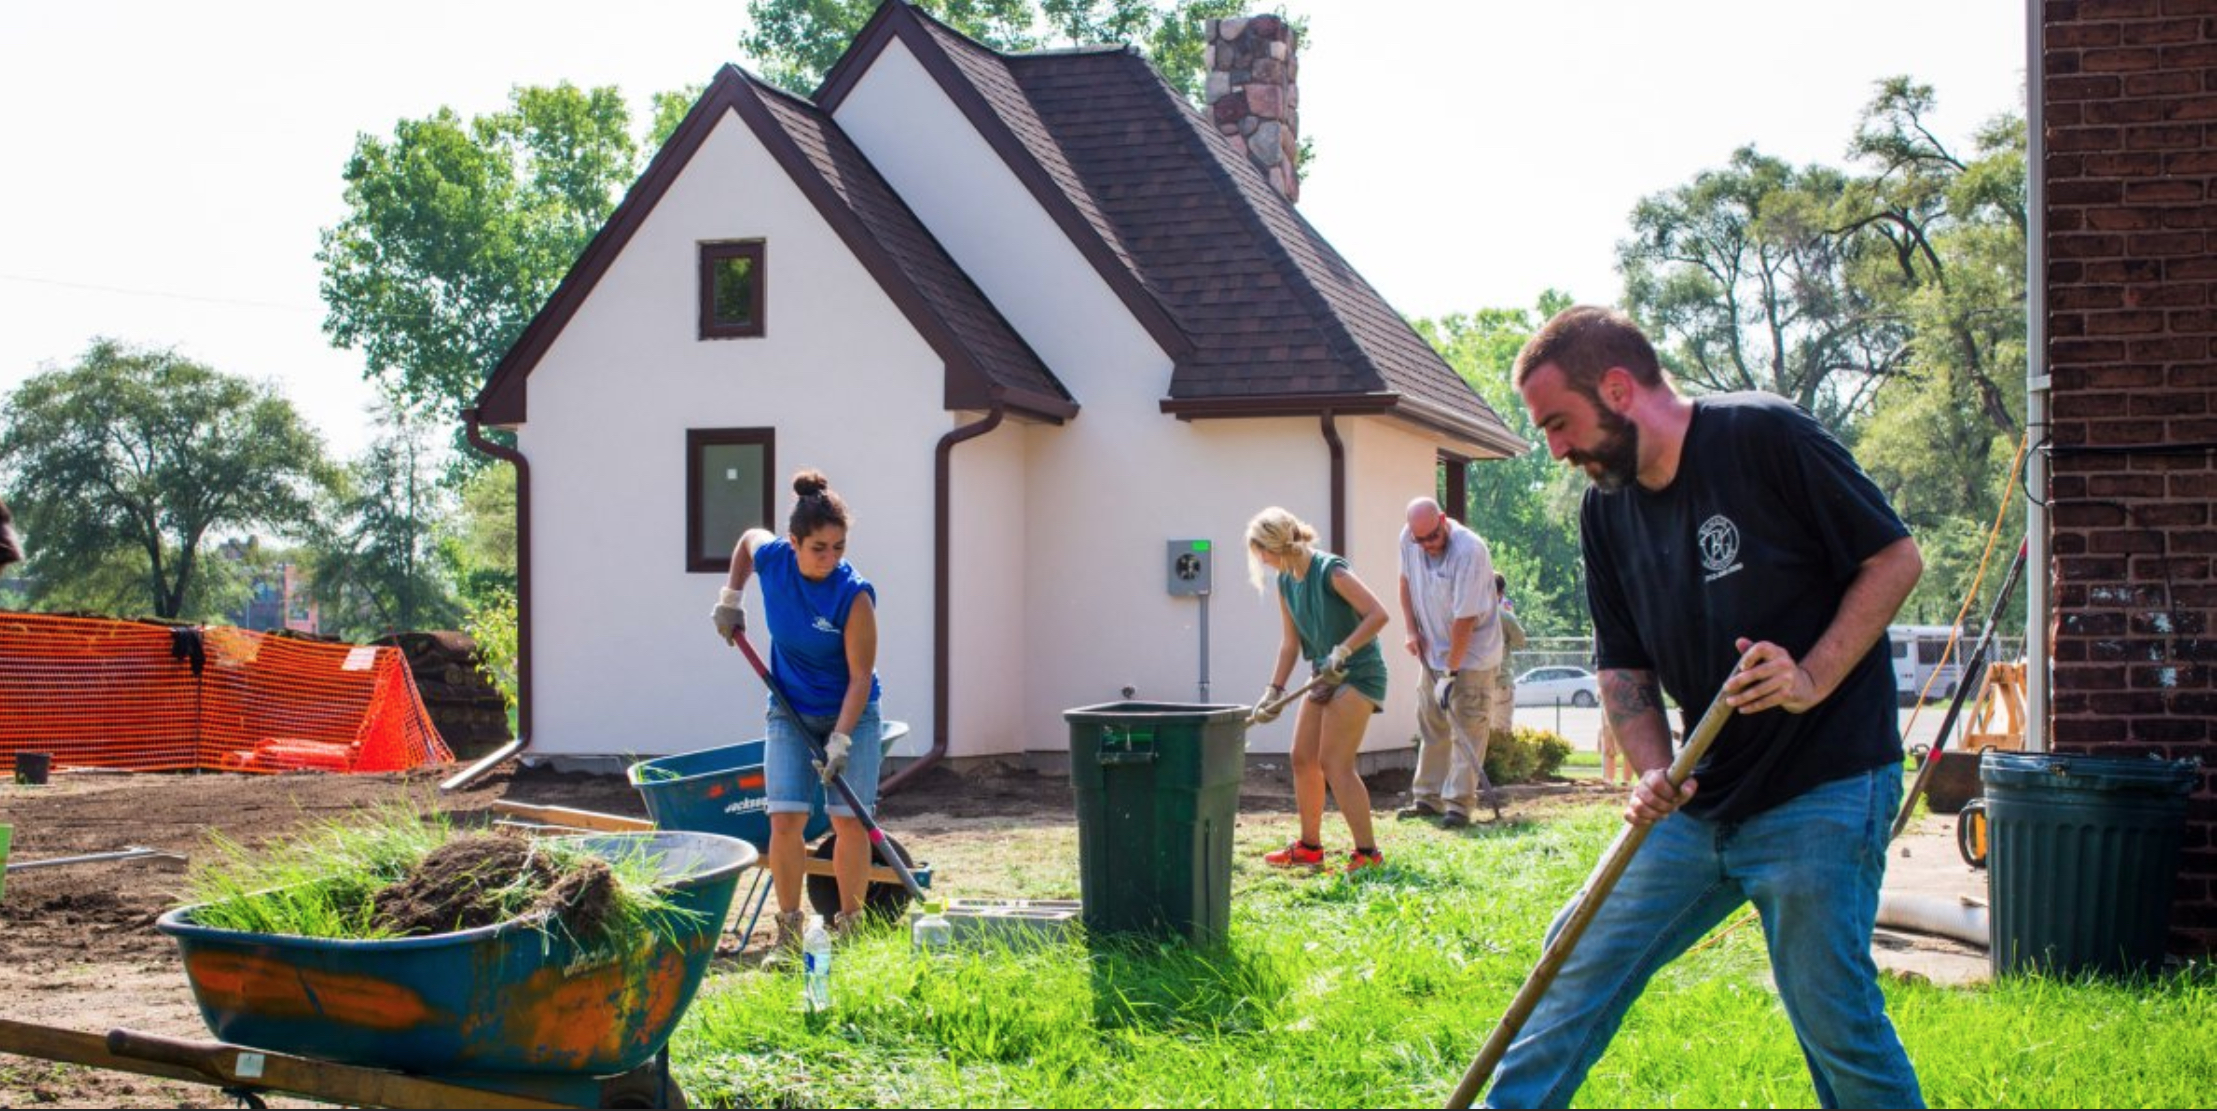 Cass Community Services staff and volunteer help beautify one of the tiny homes in Detroit